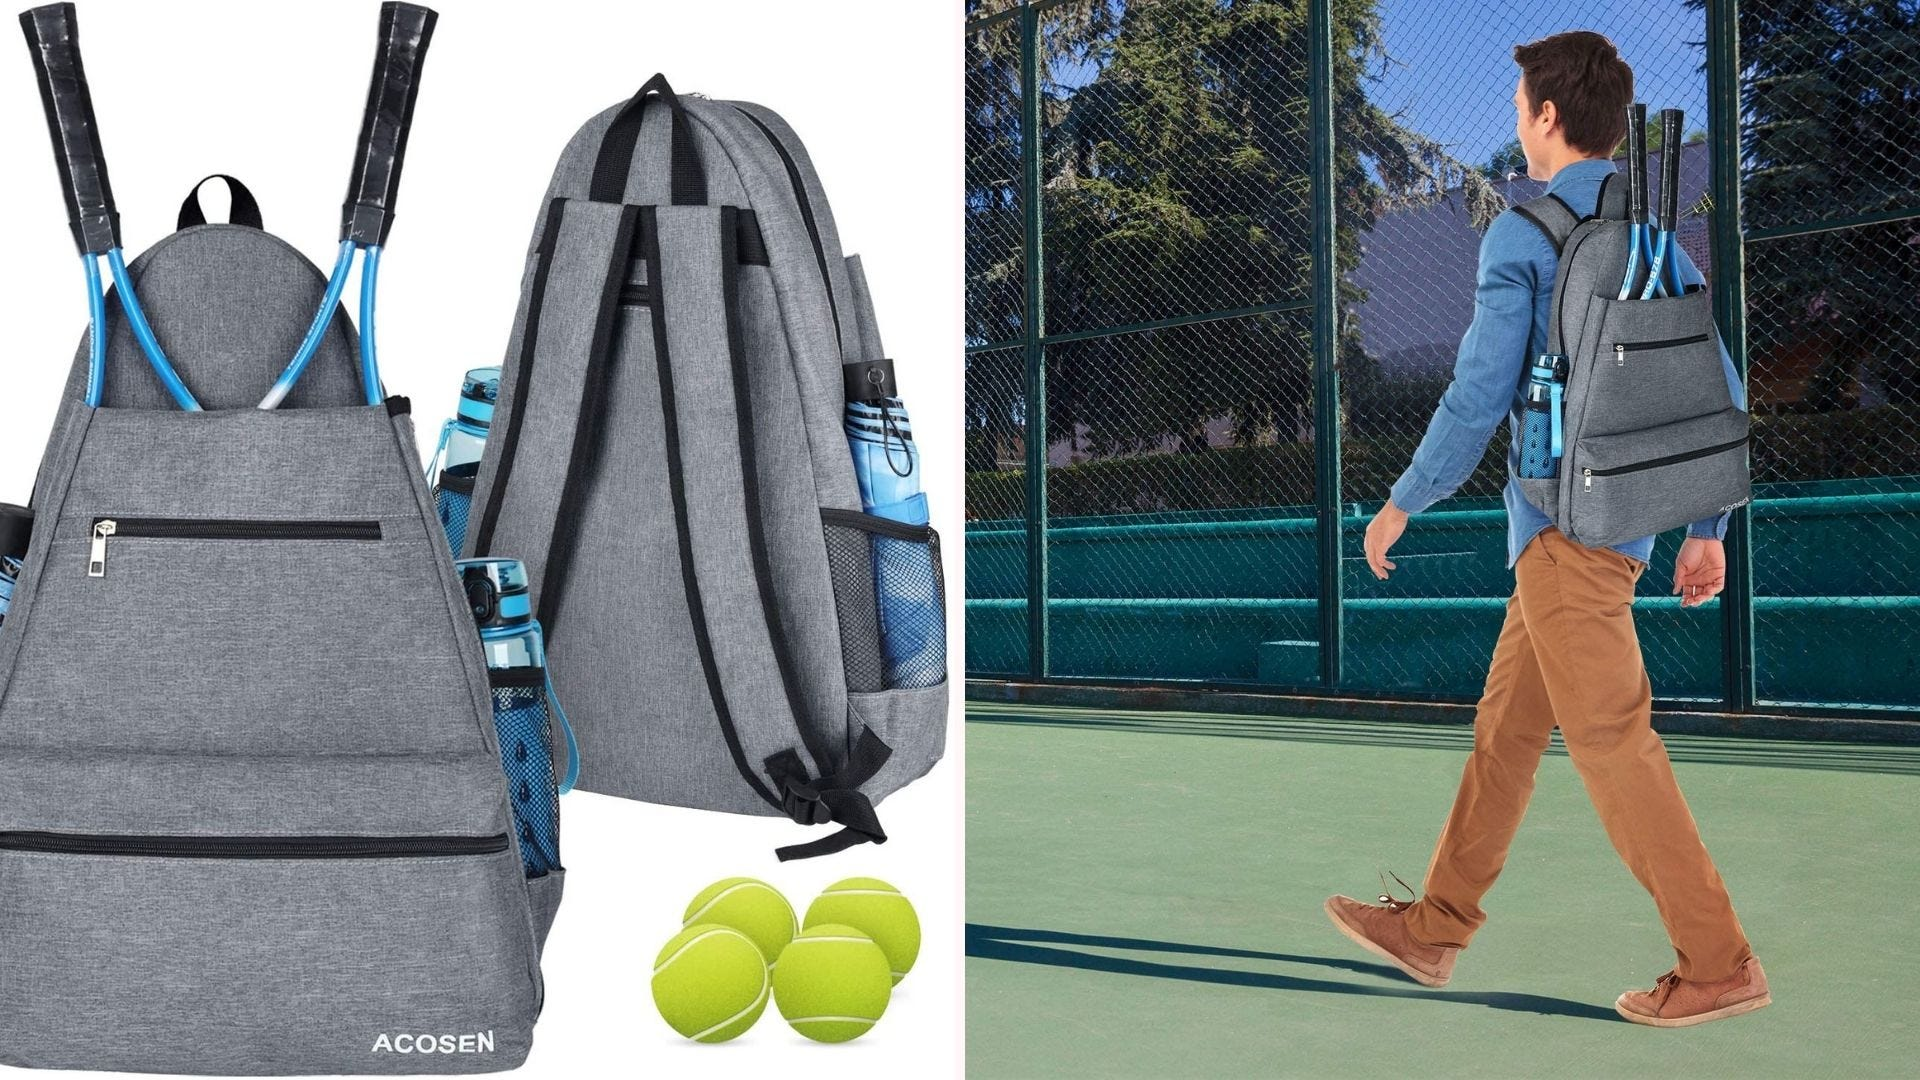 Two ACOSEN Tennis Backpacks in Gray with rackets sticking out of one, and a young man at a tennis court carrying the bag.